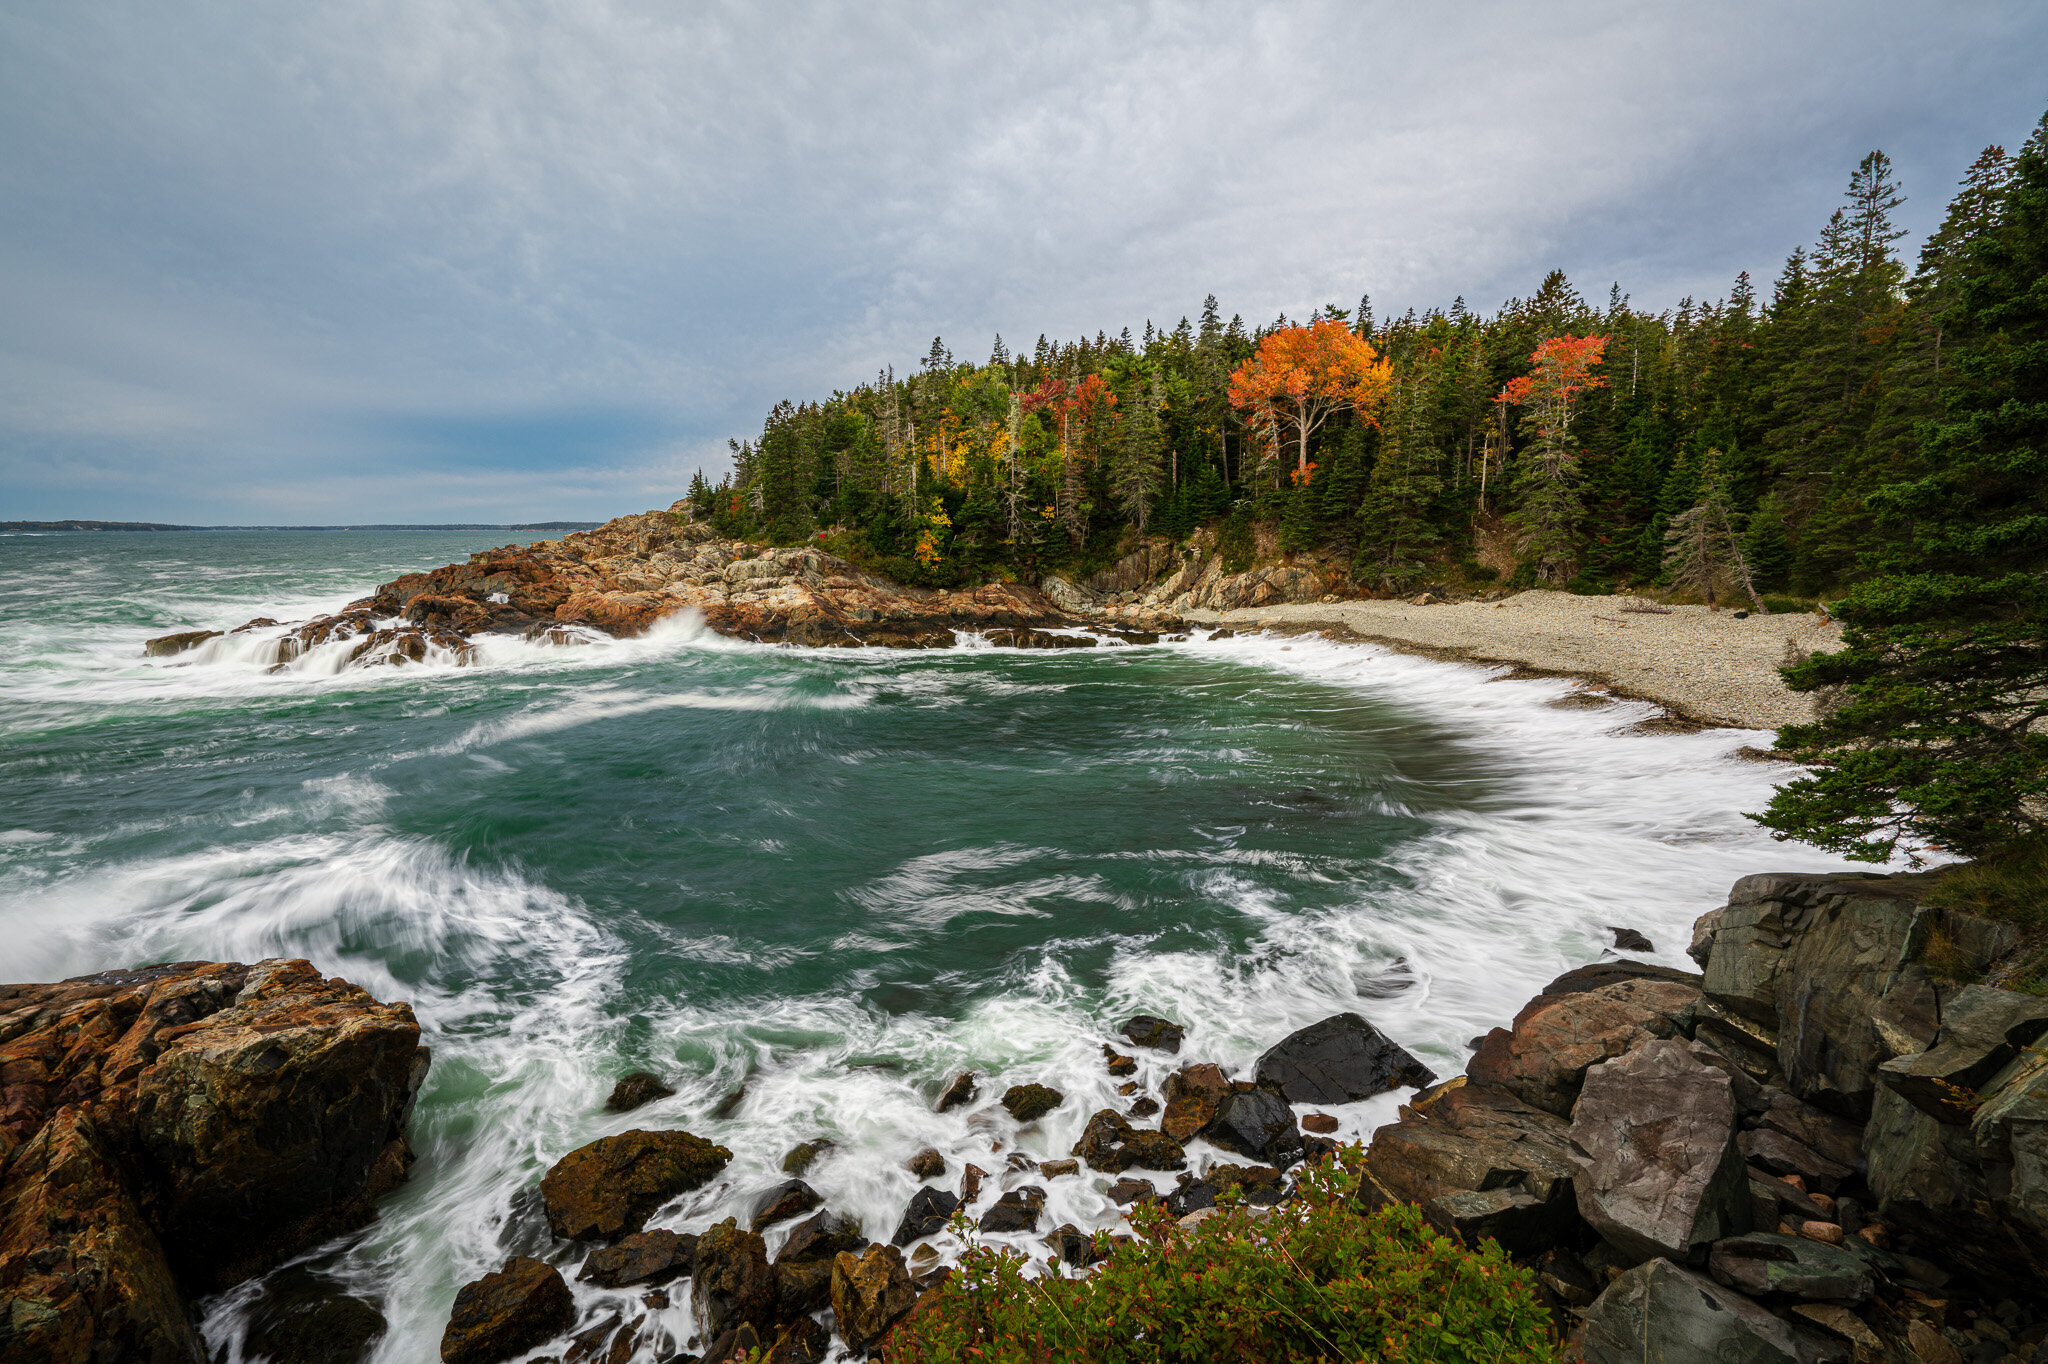 Little Hunters Beach, Acadia National Park.  Contact Scott  to commission a print or license this image.